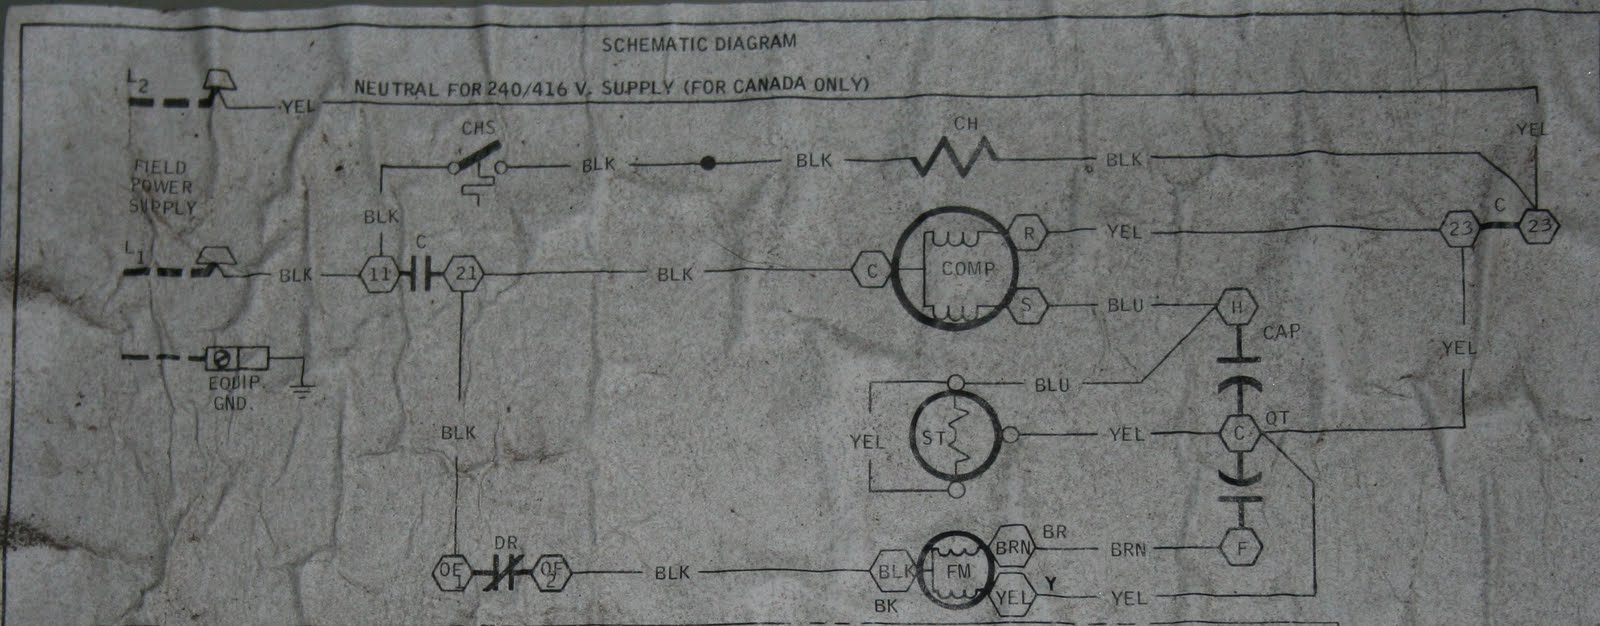 hight resolution of luckily the unit has a basic schematic on the inside of the electrical comparment cover